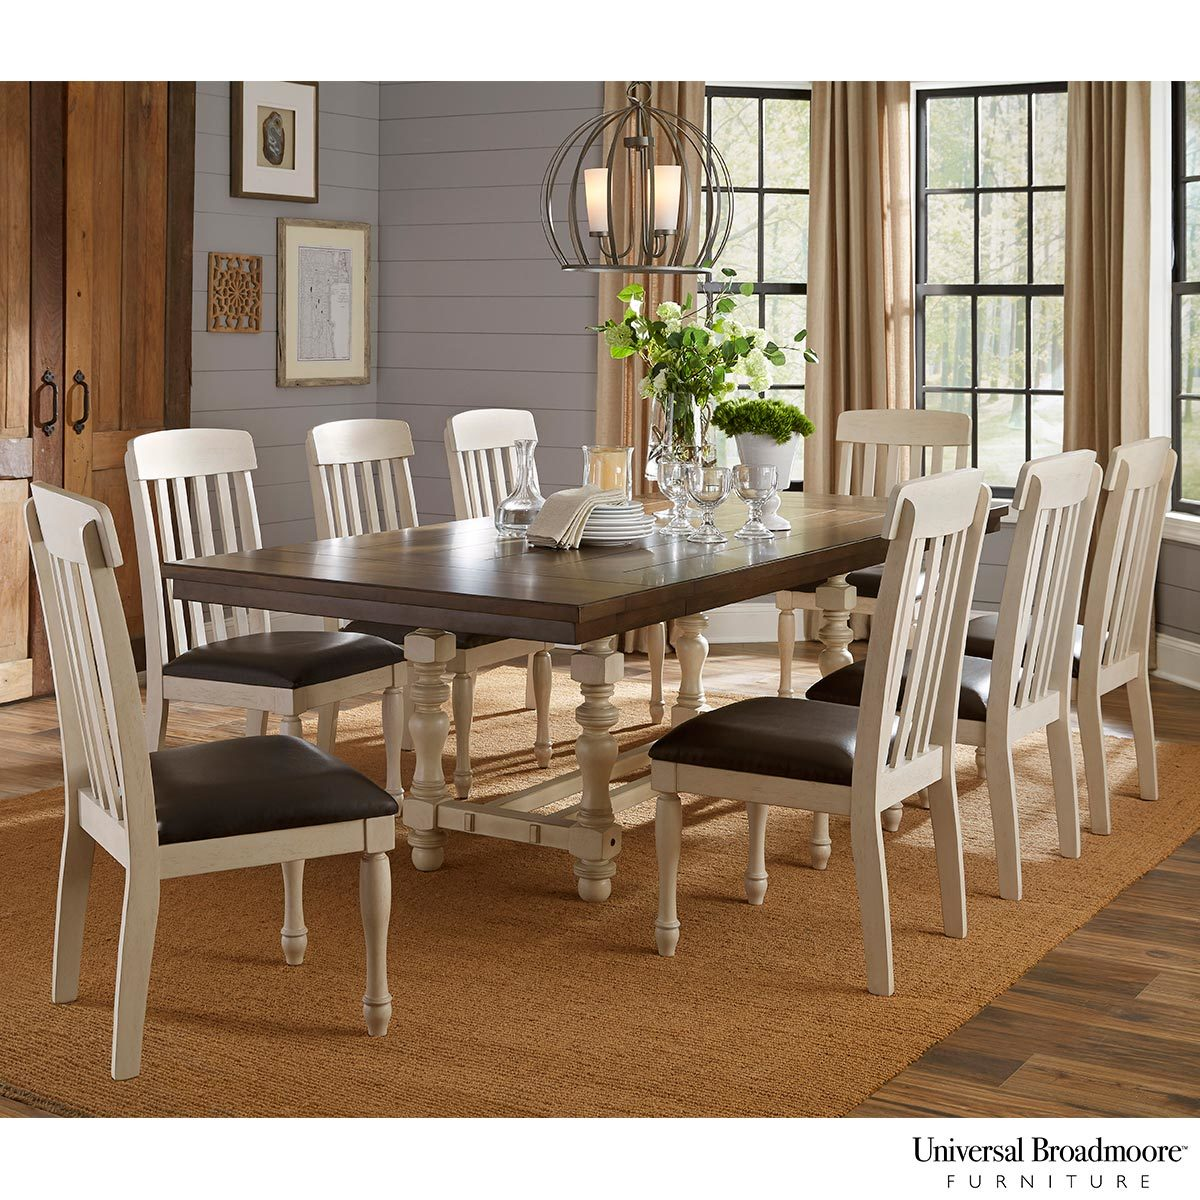 Dining Table 8 Chairs Universal Broadmoore Extending Dining Room Table 8 Chairs Costco Uk